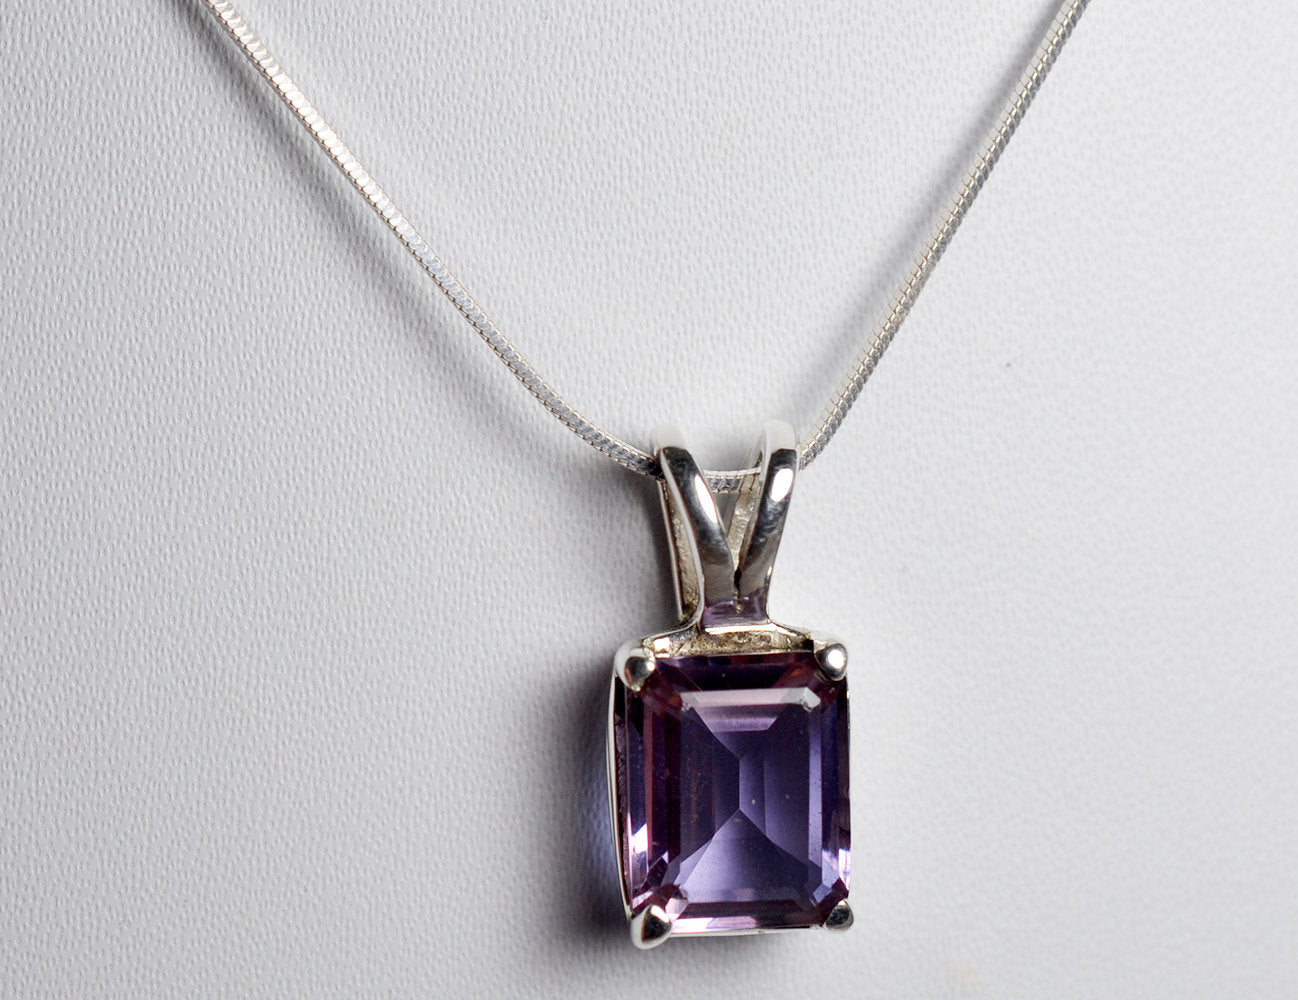 Lab-Created Alexandrite 100% Color Change Pendant with 925 Solid Sterling Silver Italian Snake Chain - NavyaCraft